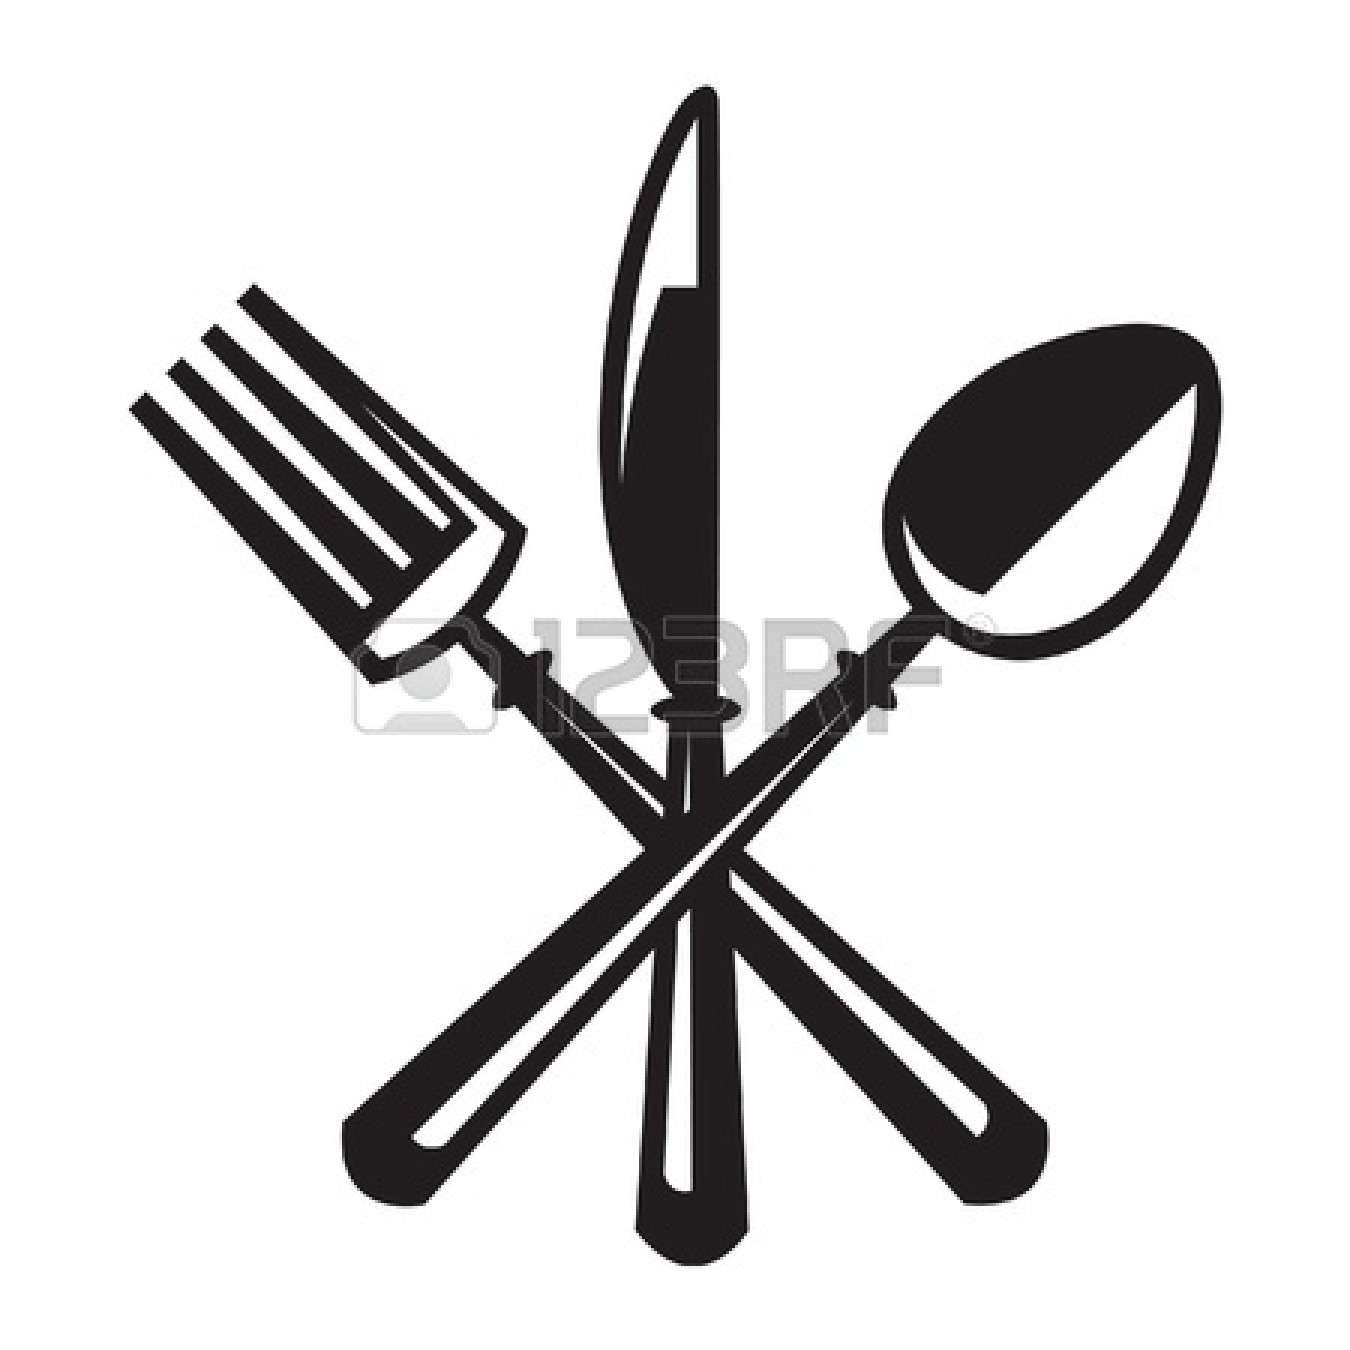 Spoon And Fork Crossed Clipart Panda